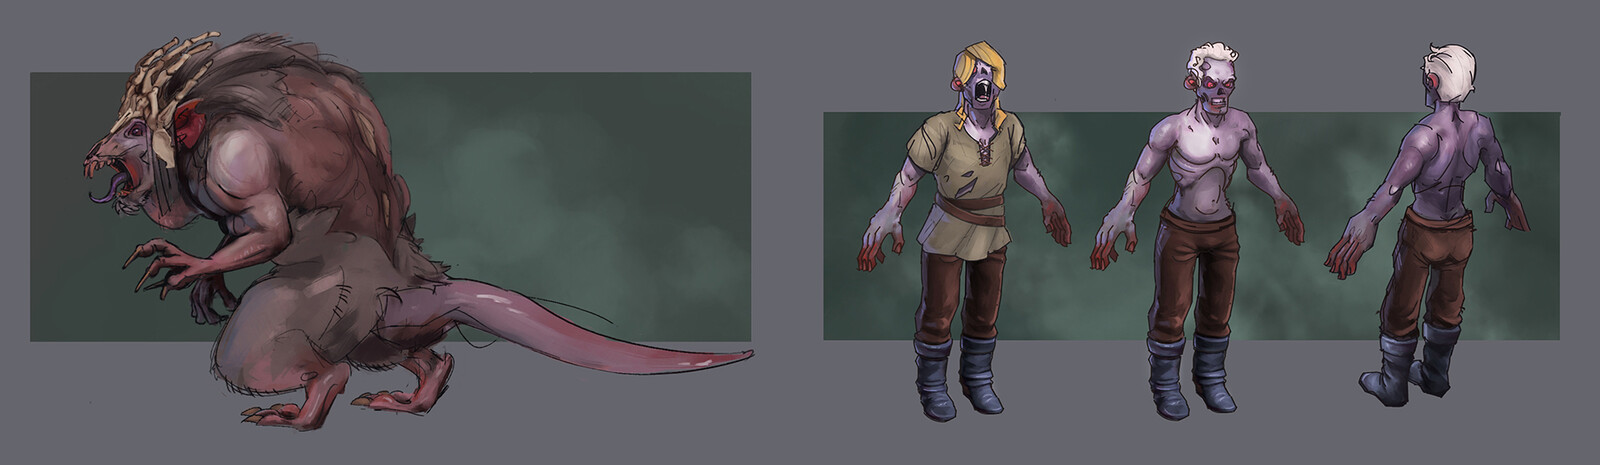 Boss and Enemy Concept